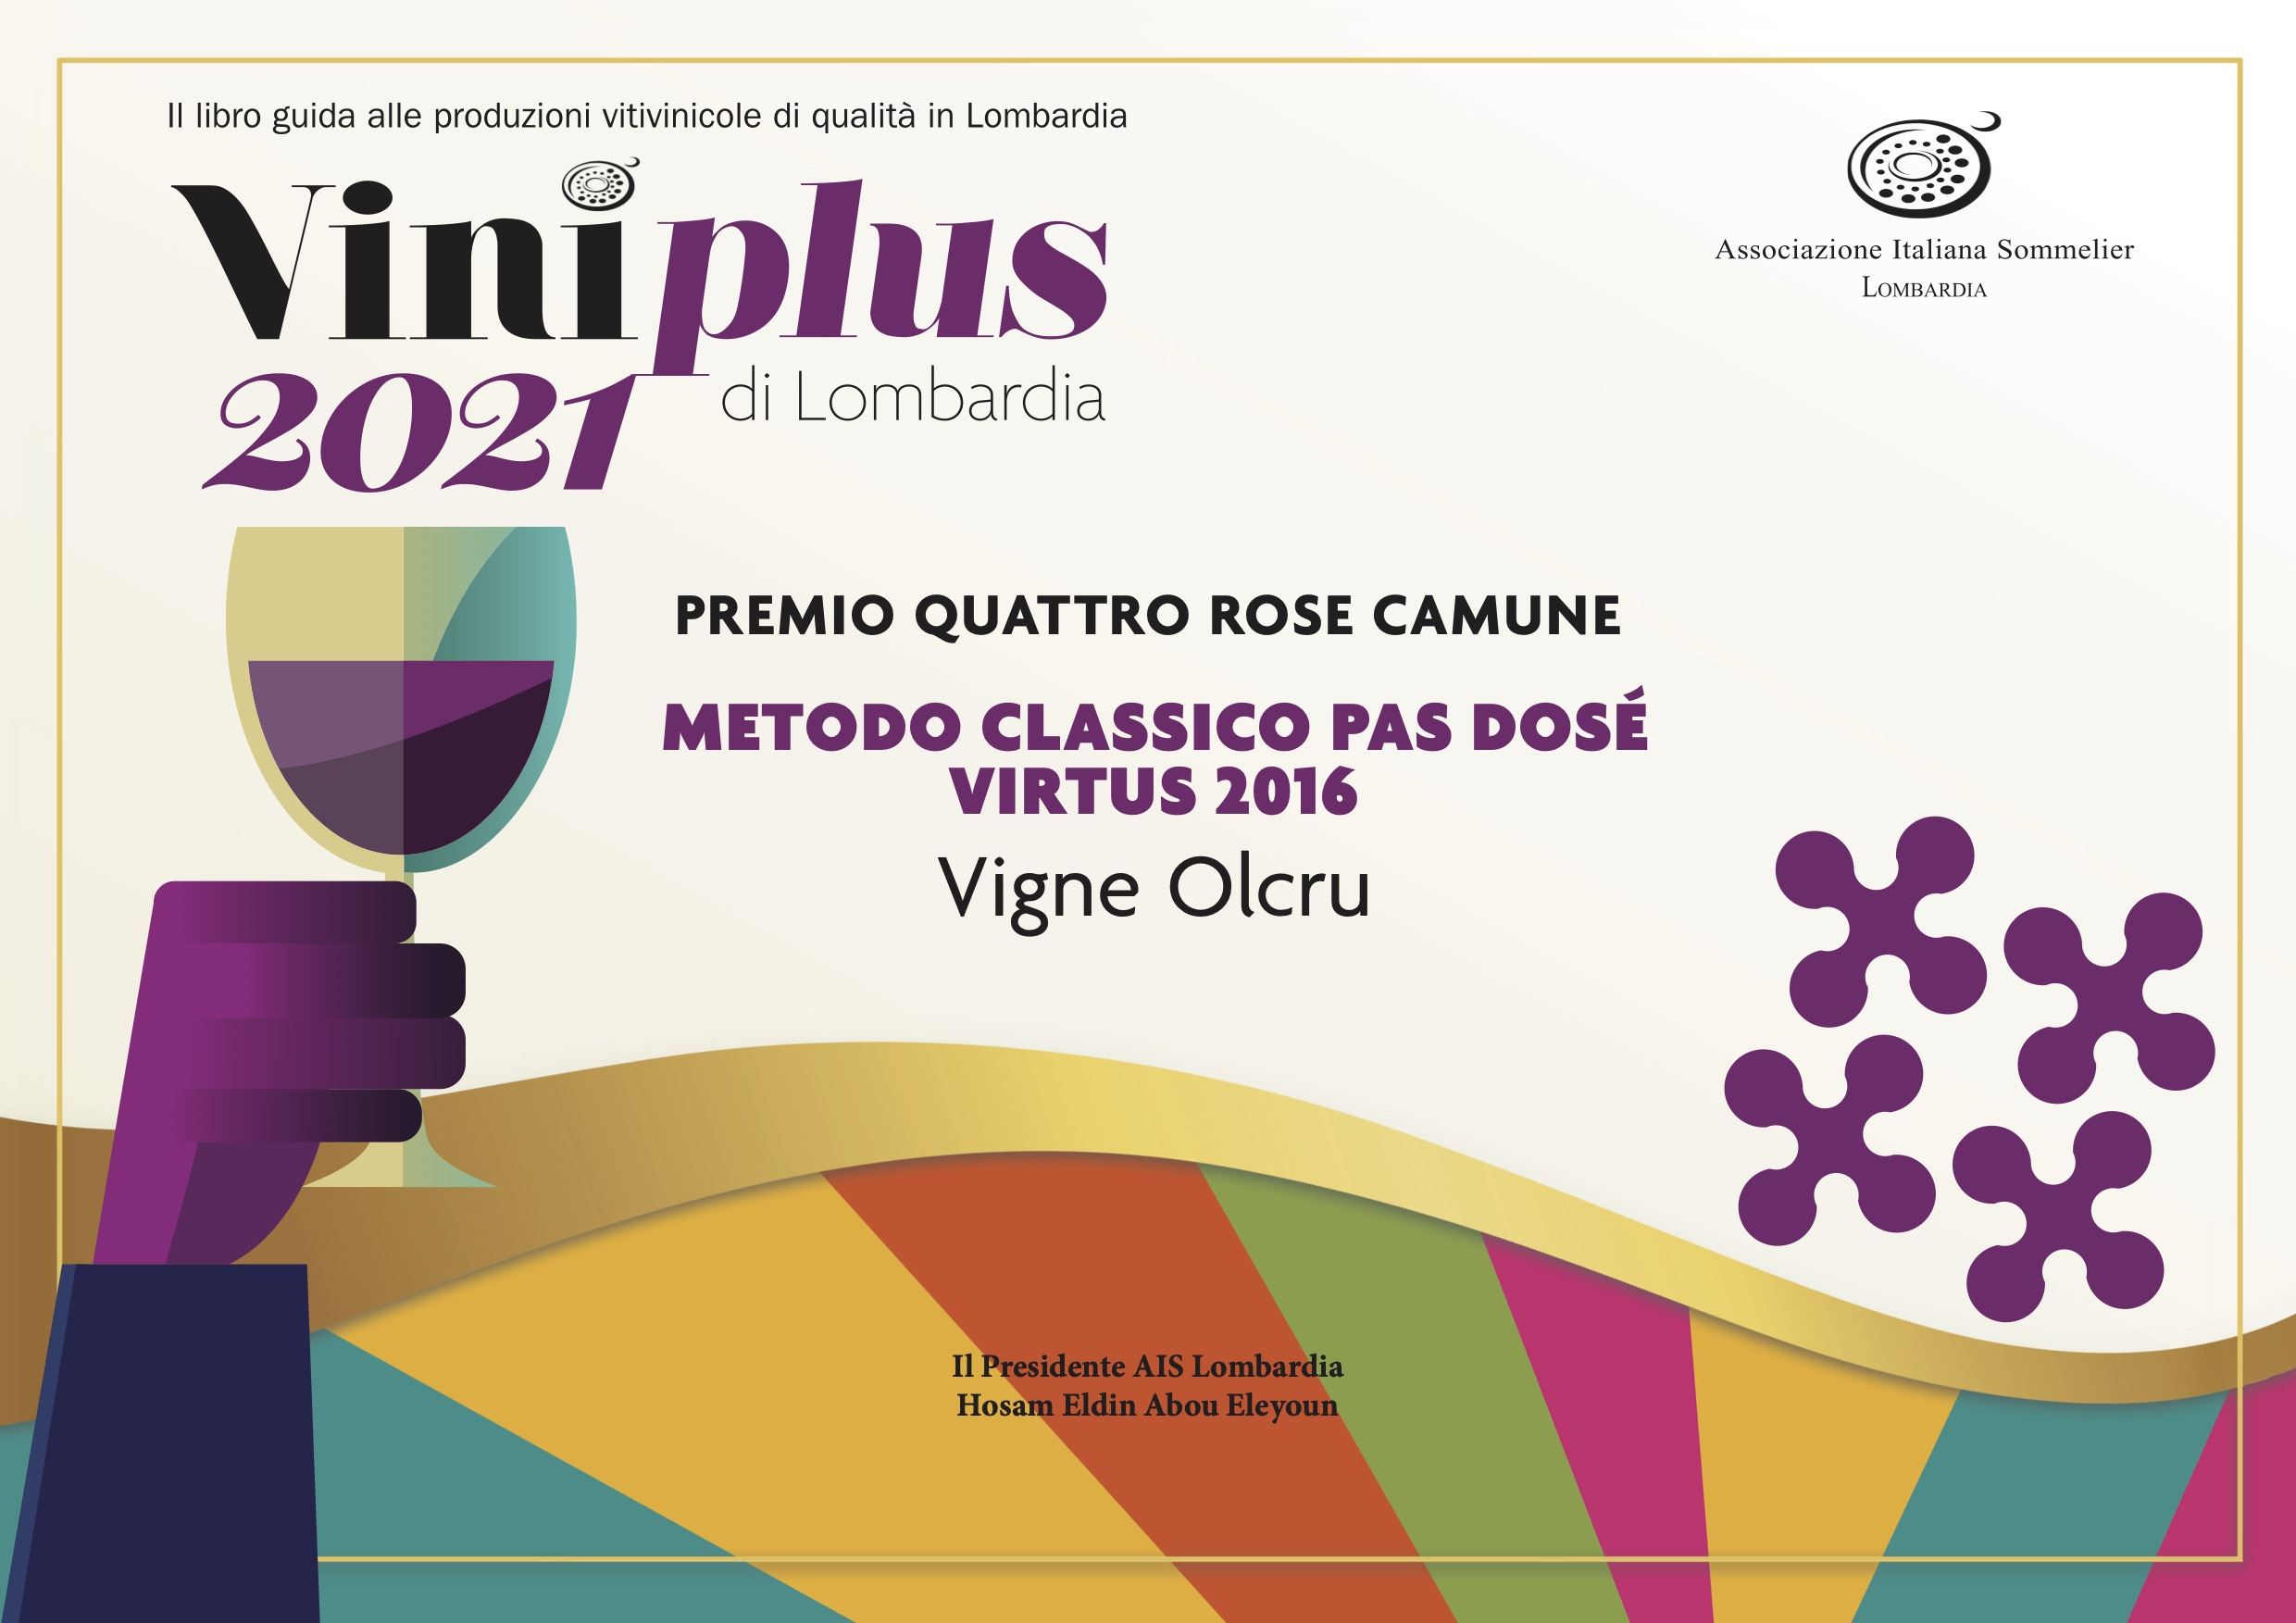 Vini Plus 2021 – 4 ROSE CAMUNE – Virtus